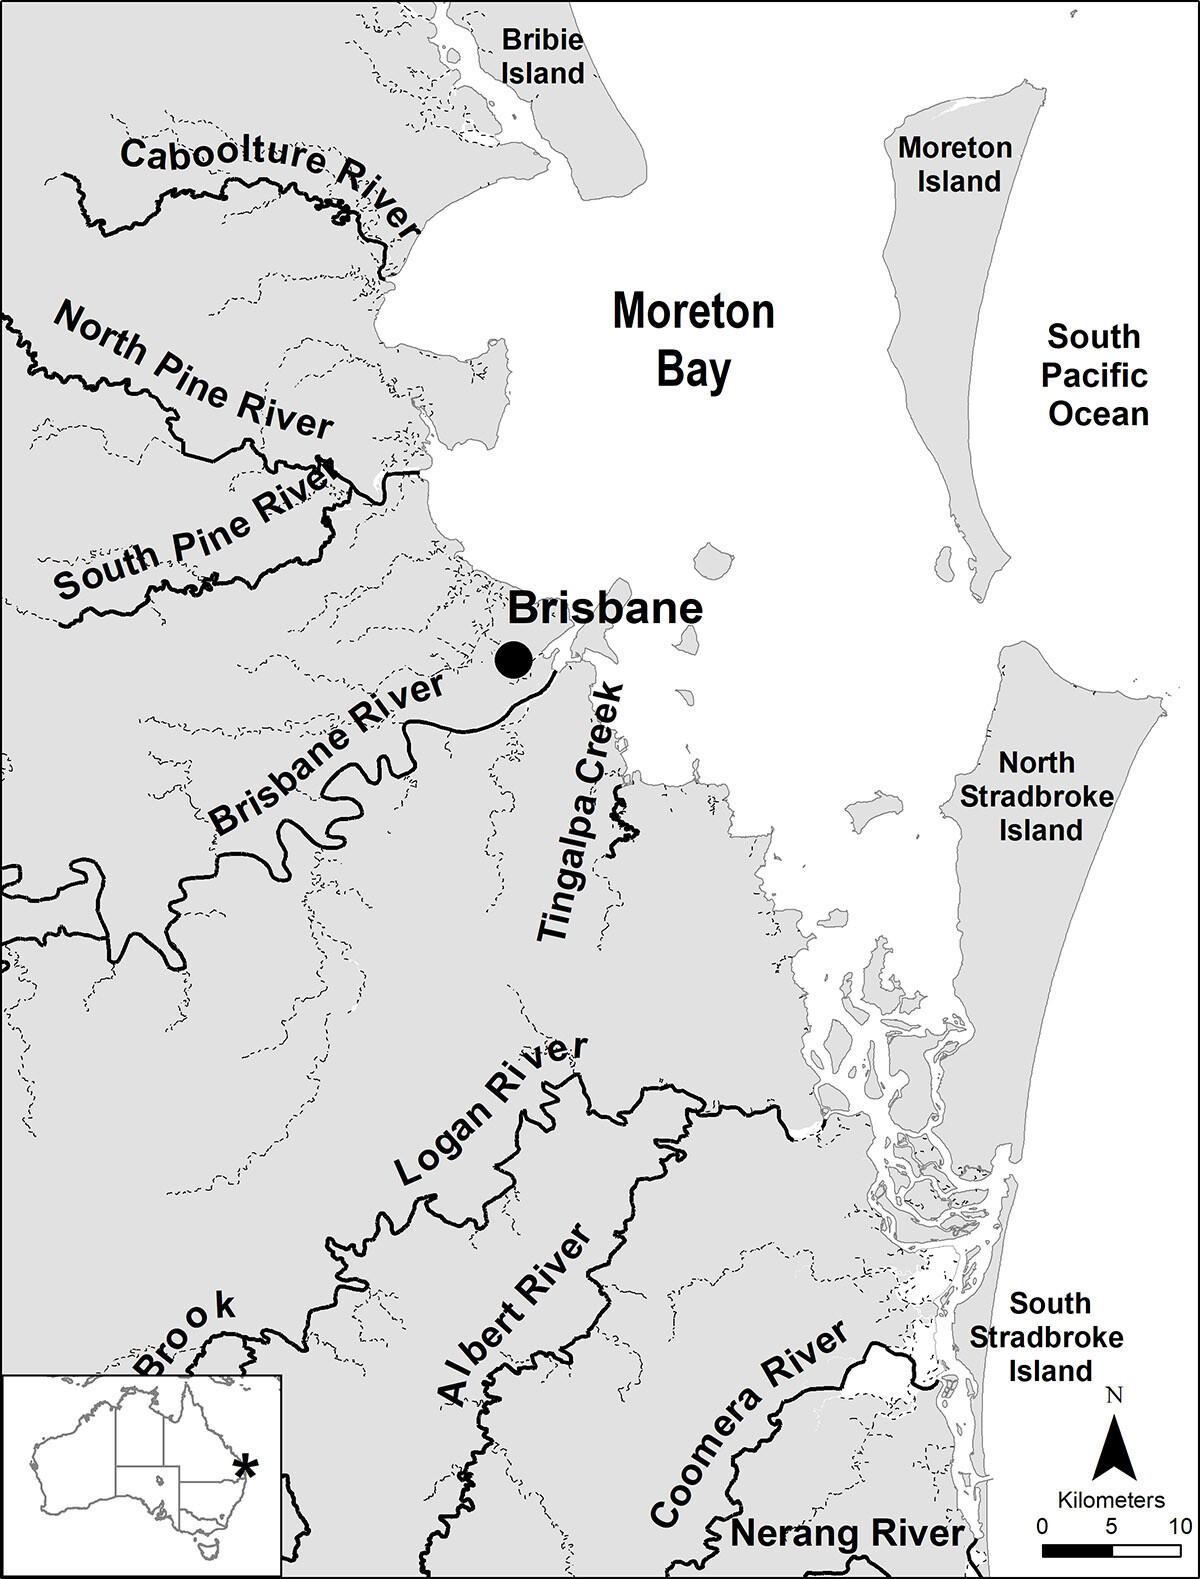 Moreton Bay region with major rivers flowing into the Bay